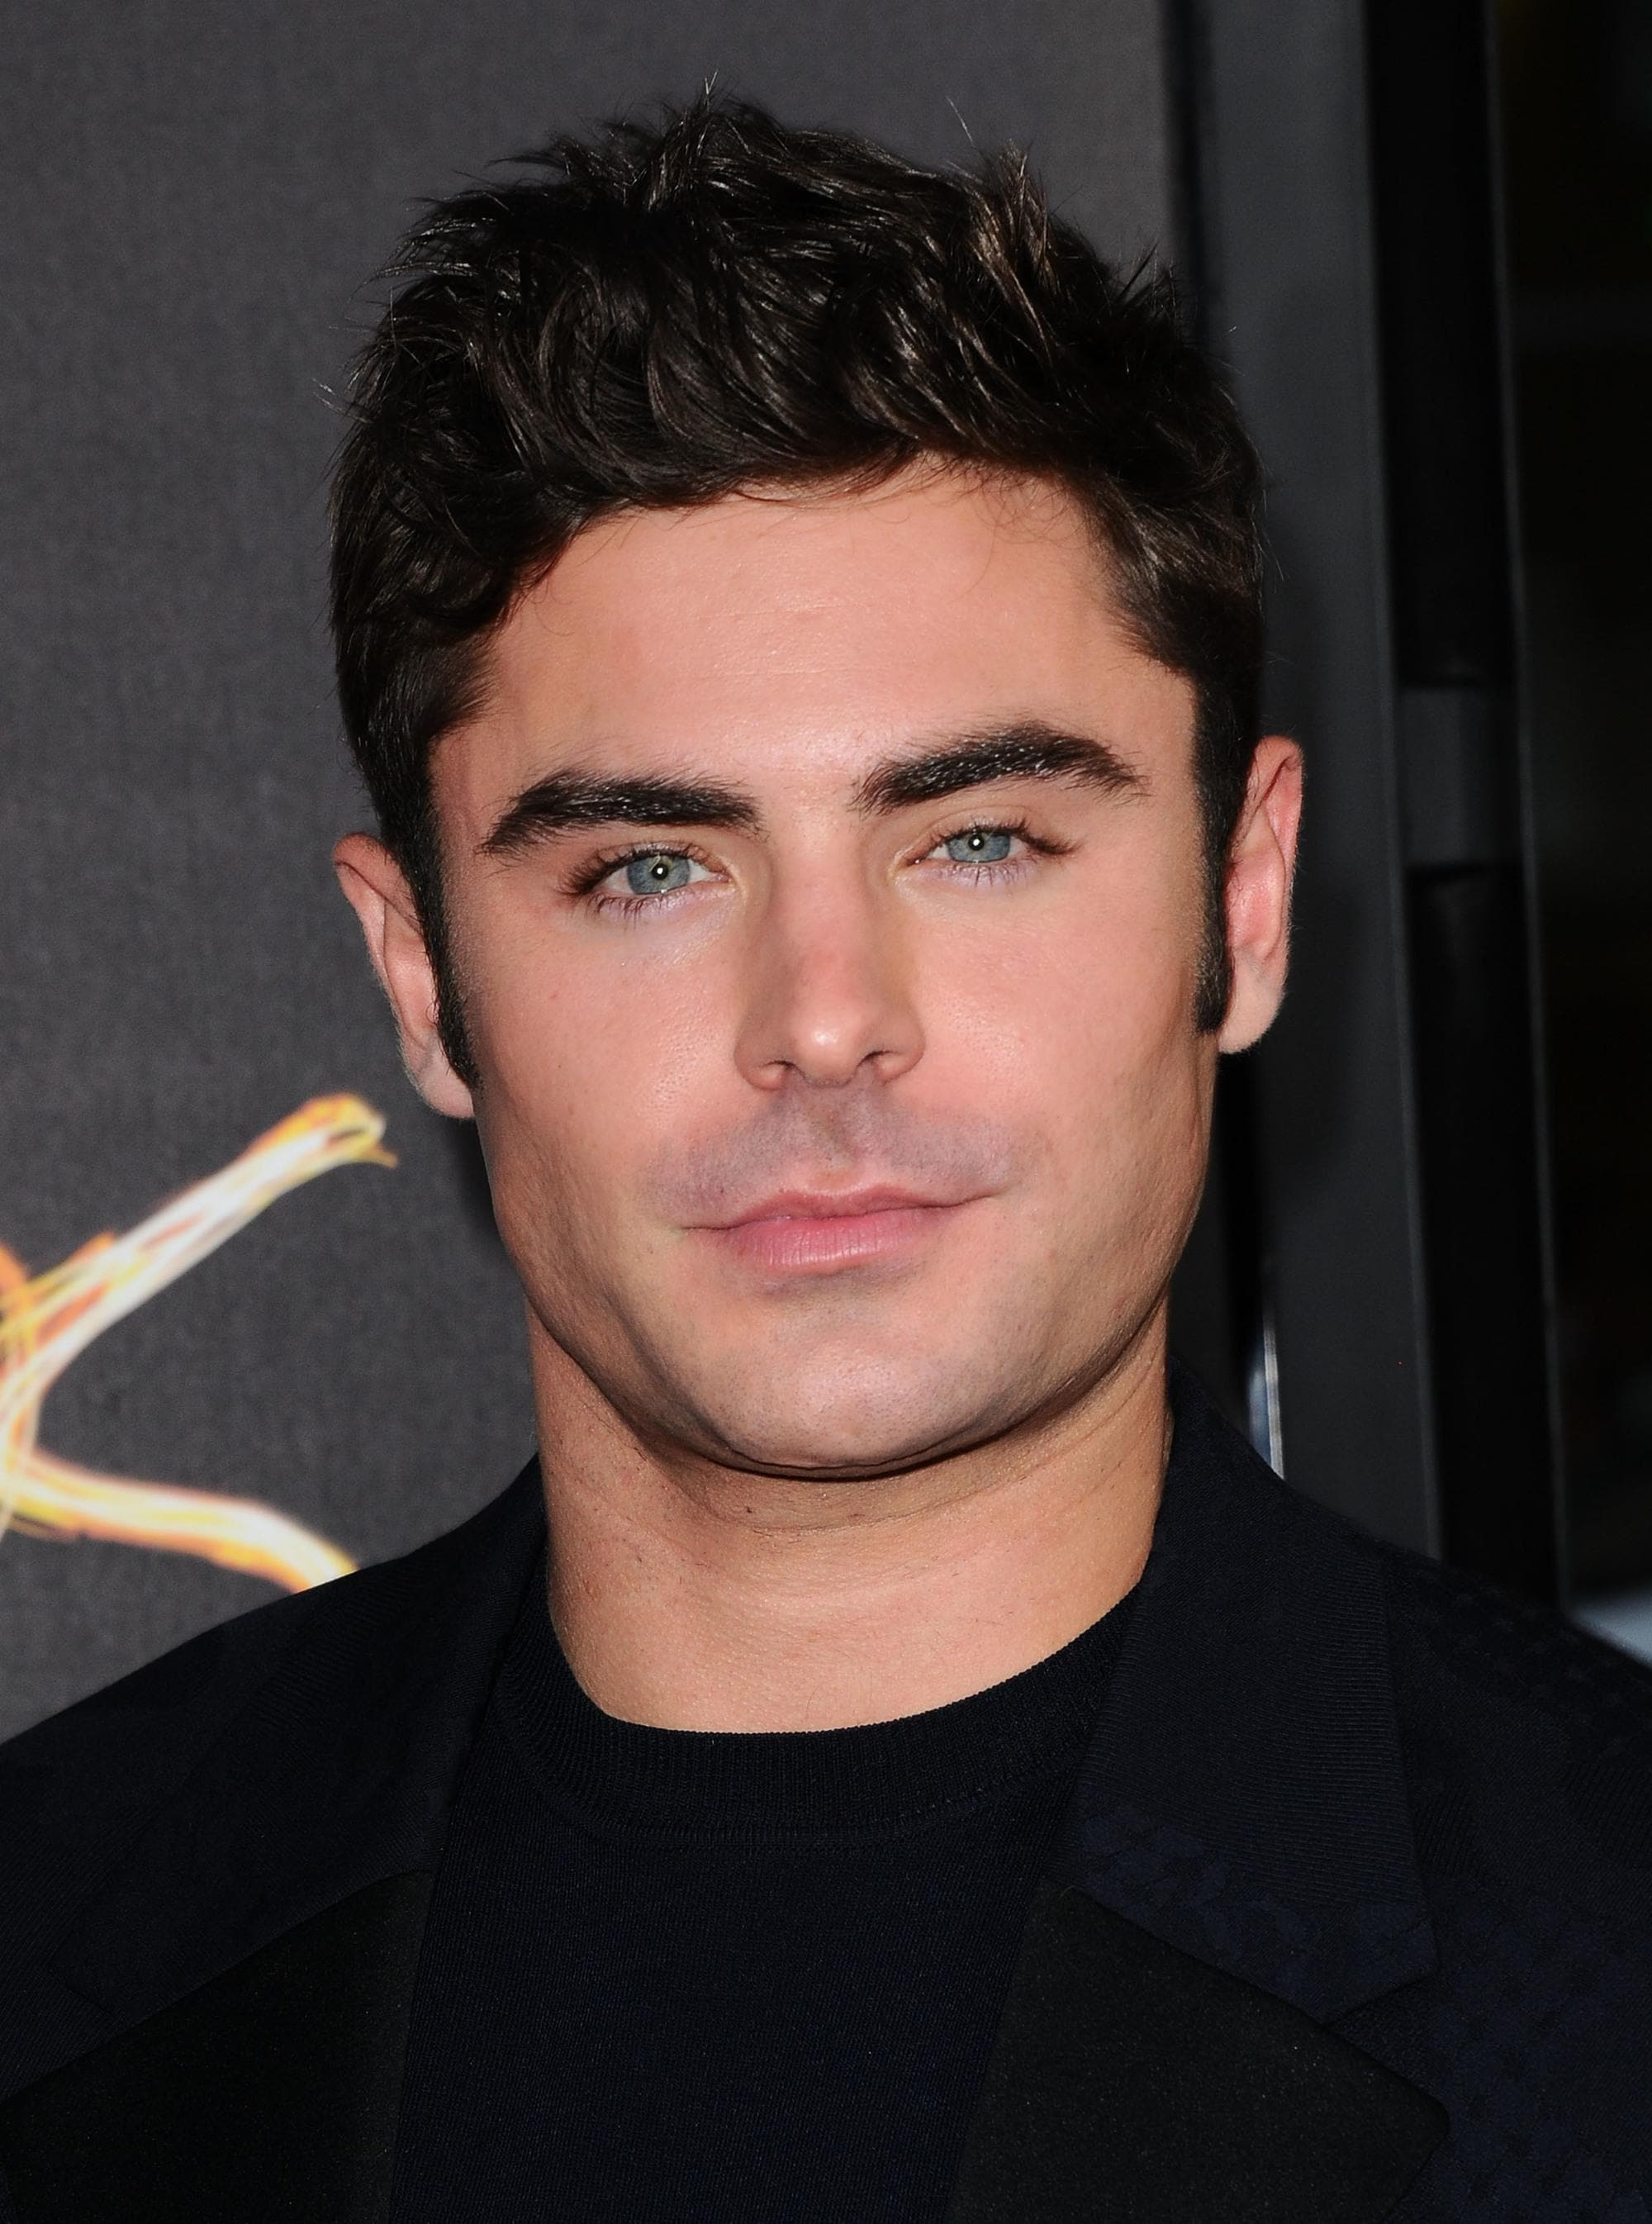 zac efron with dark spiked up quiff hair